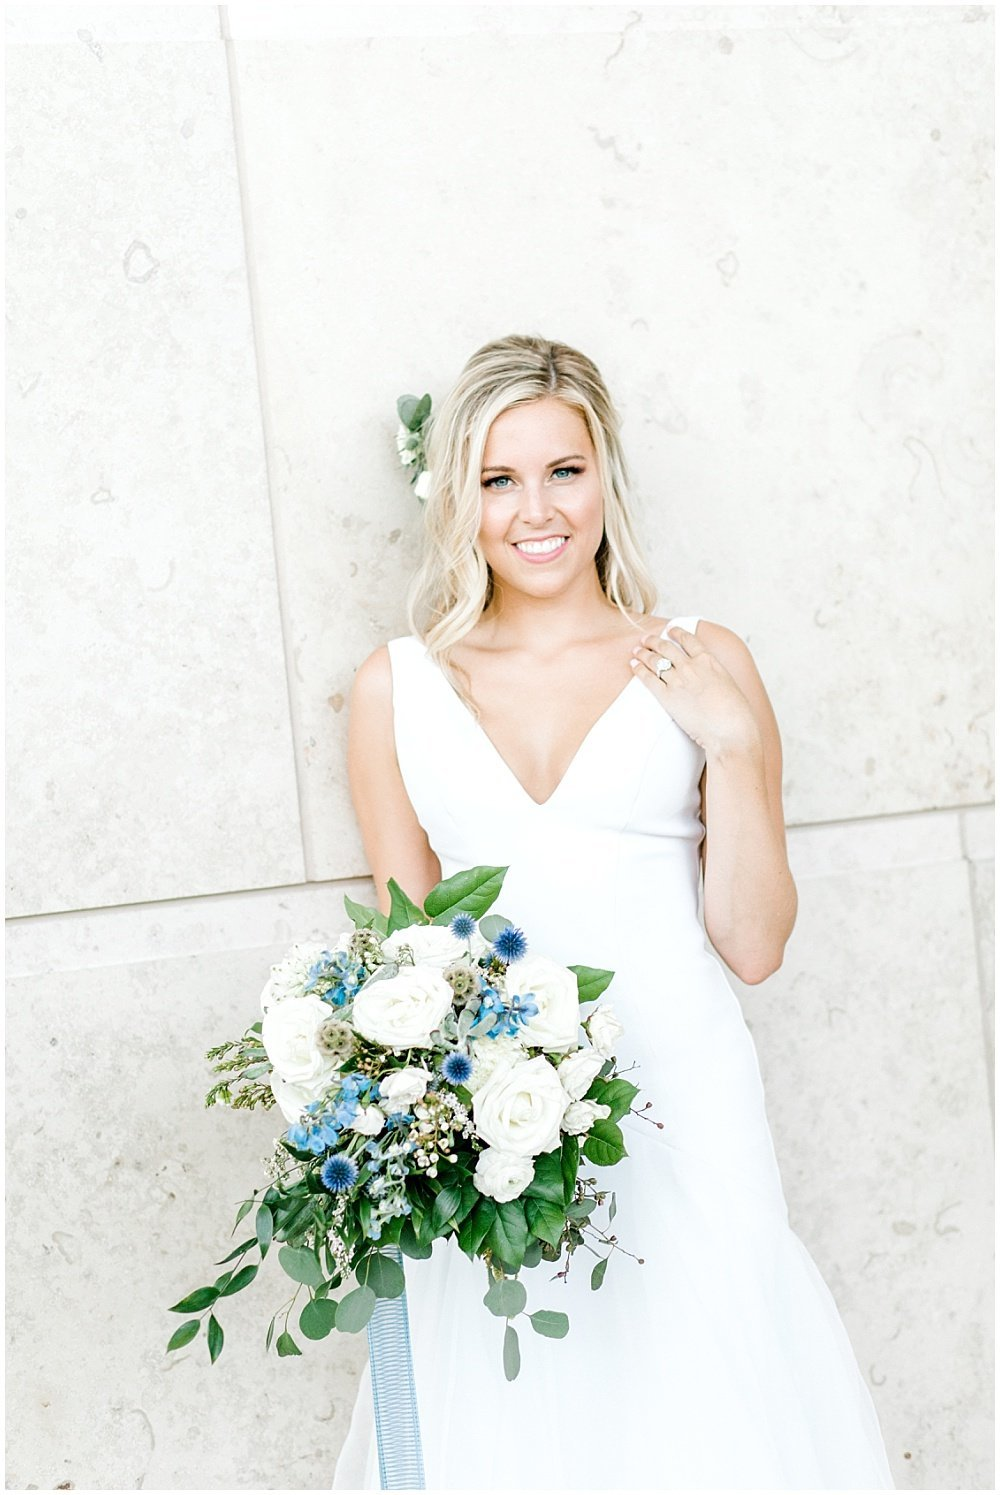 NFL-Player-Nick-Martin-Indianapolis-Indiana-Wedding-The-Knot-Featured-Jessica-Dum-Wedding-Coordination-photo__0017